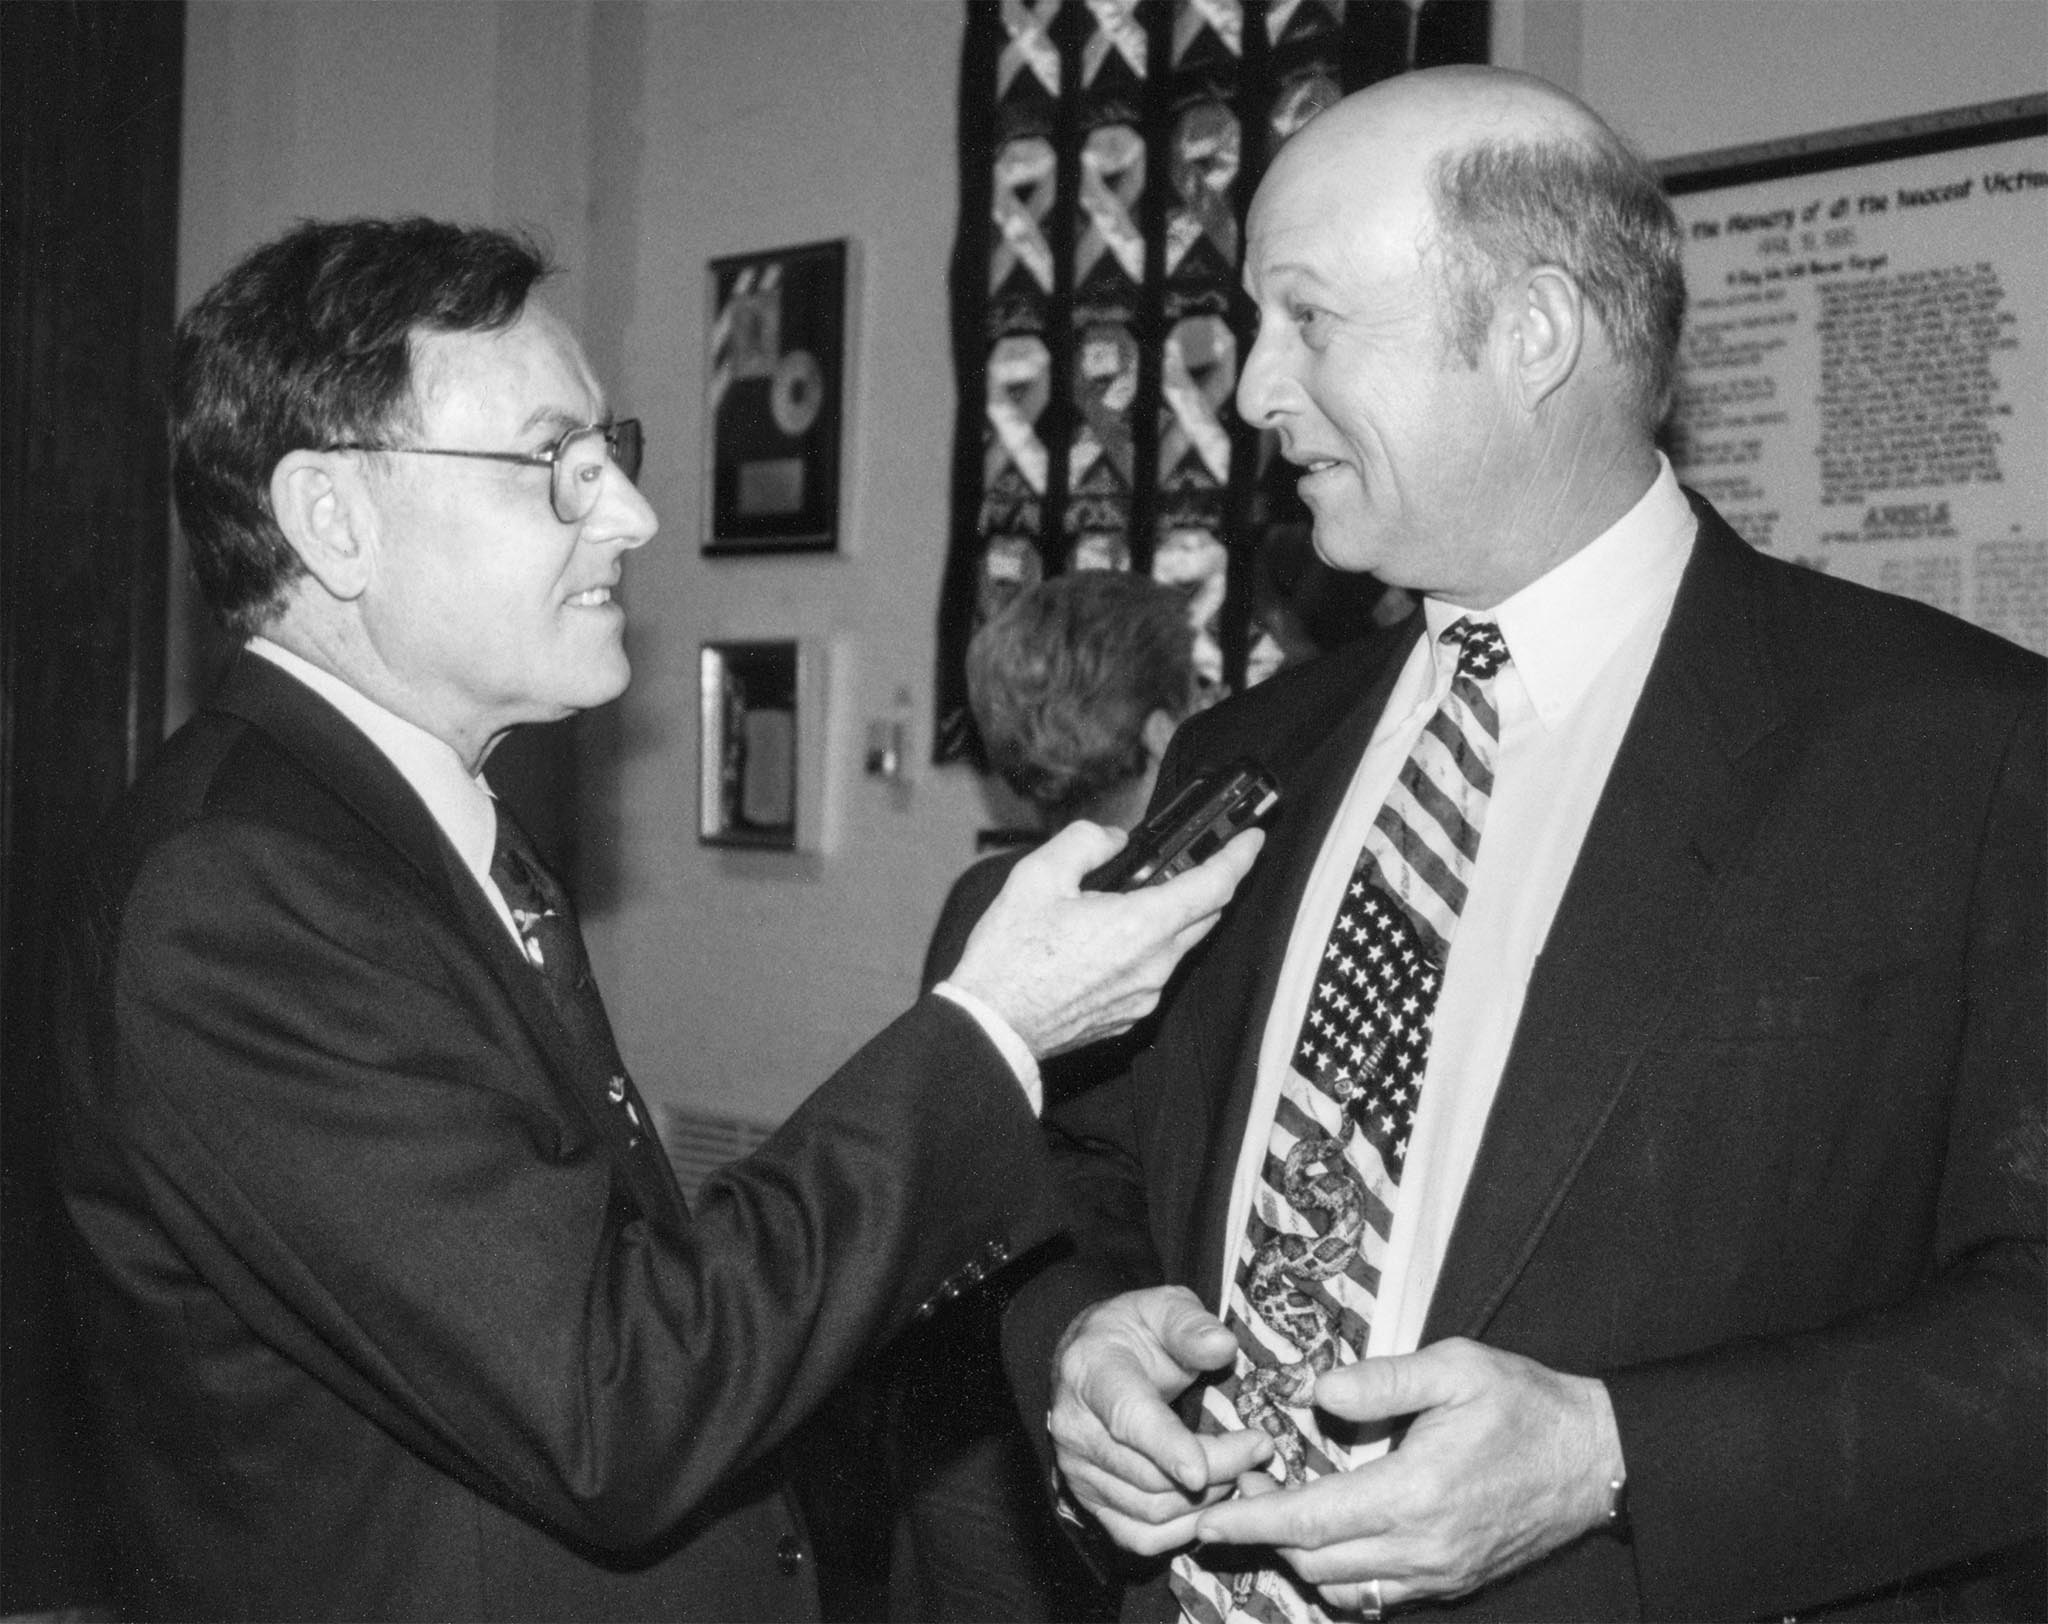 Drought was a significant concern among farmers and ranchers in the Oklahoma Panhandle in the late 1990s. Relaying the challenges the dry conditions brought, Oklahoma Farm Bureau Board Member Joe Mayer (right) spoke to the Daily Oklahoman's Paul English at a Governor's Press Conference in 1998. Mayer outlined current and future problems caused by the drought and how those issues would impact Oklahoma farmers and ranchers.